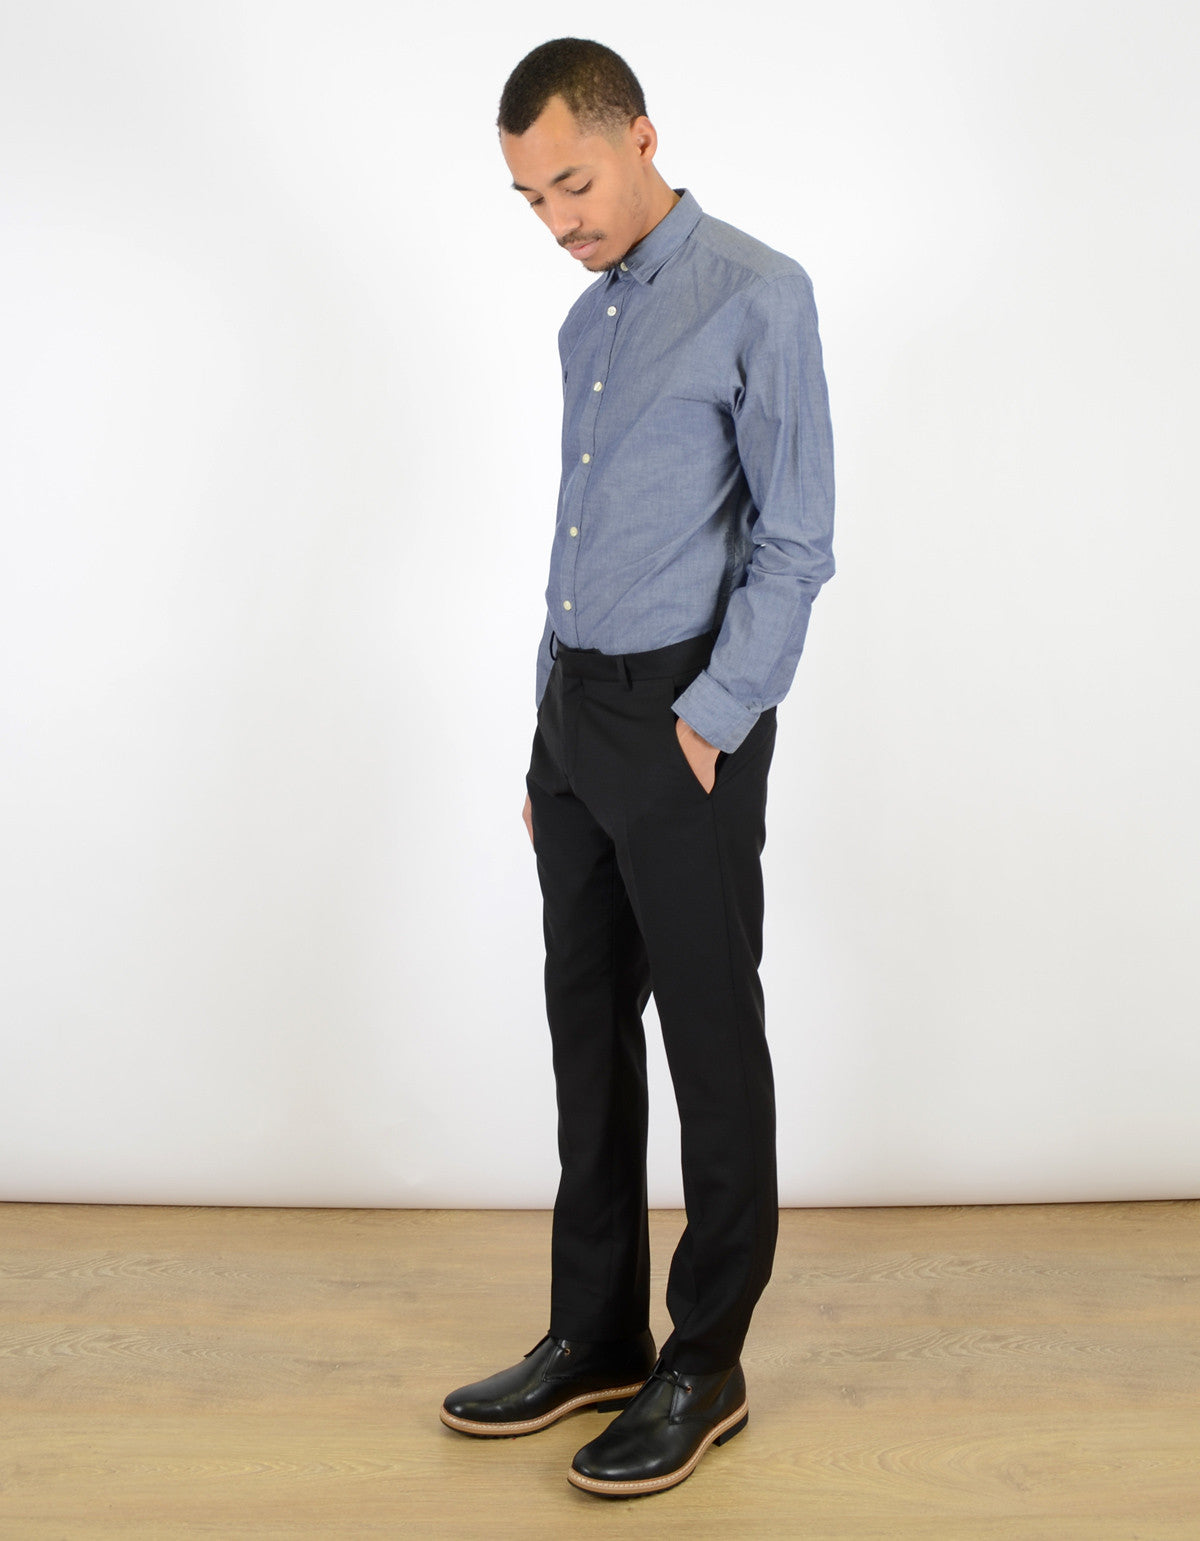 Selected Homme One Mylo Trouser Black - Still Life - 3